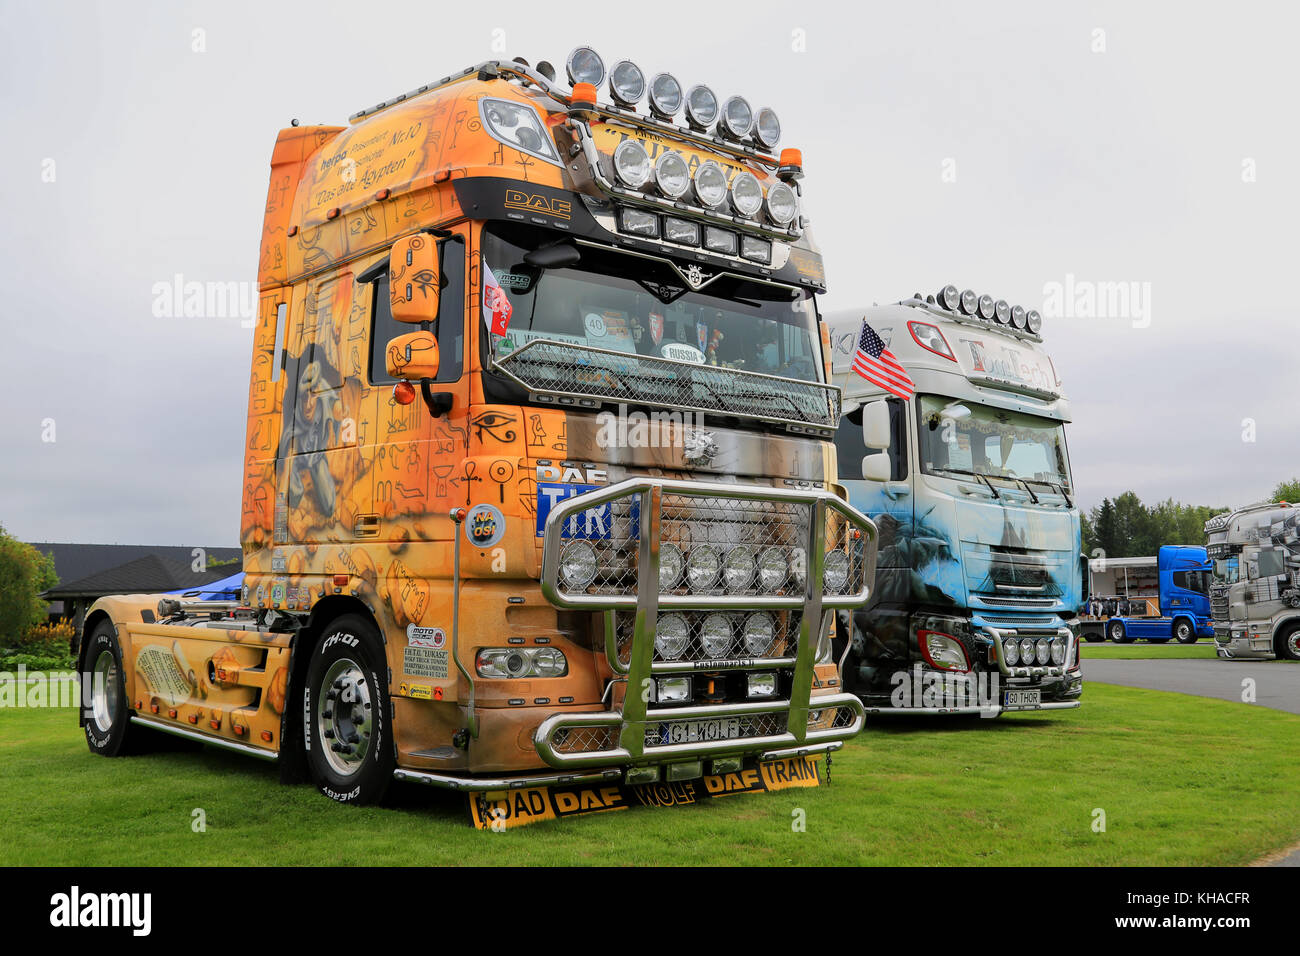 Daf Truck Stock Photos & Daf Truck Stock Images - Alamy